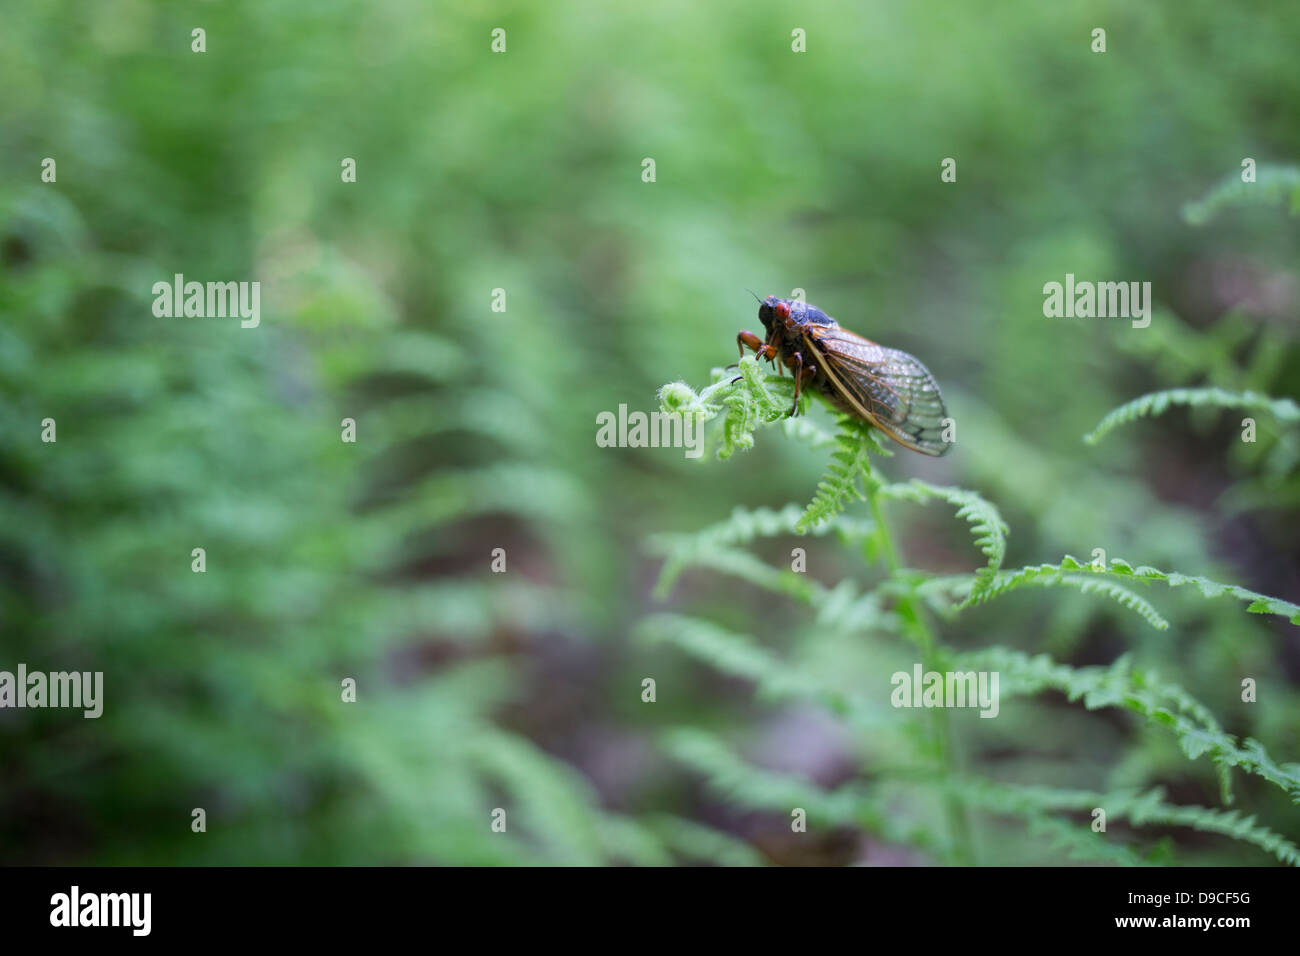 Periodical Cicada (Magicicada sp.) also know as the 17-year Periodical Cicadas of eastern North America. - Stock Image